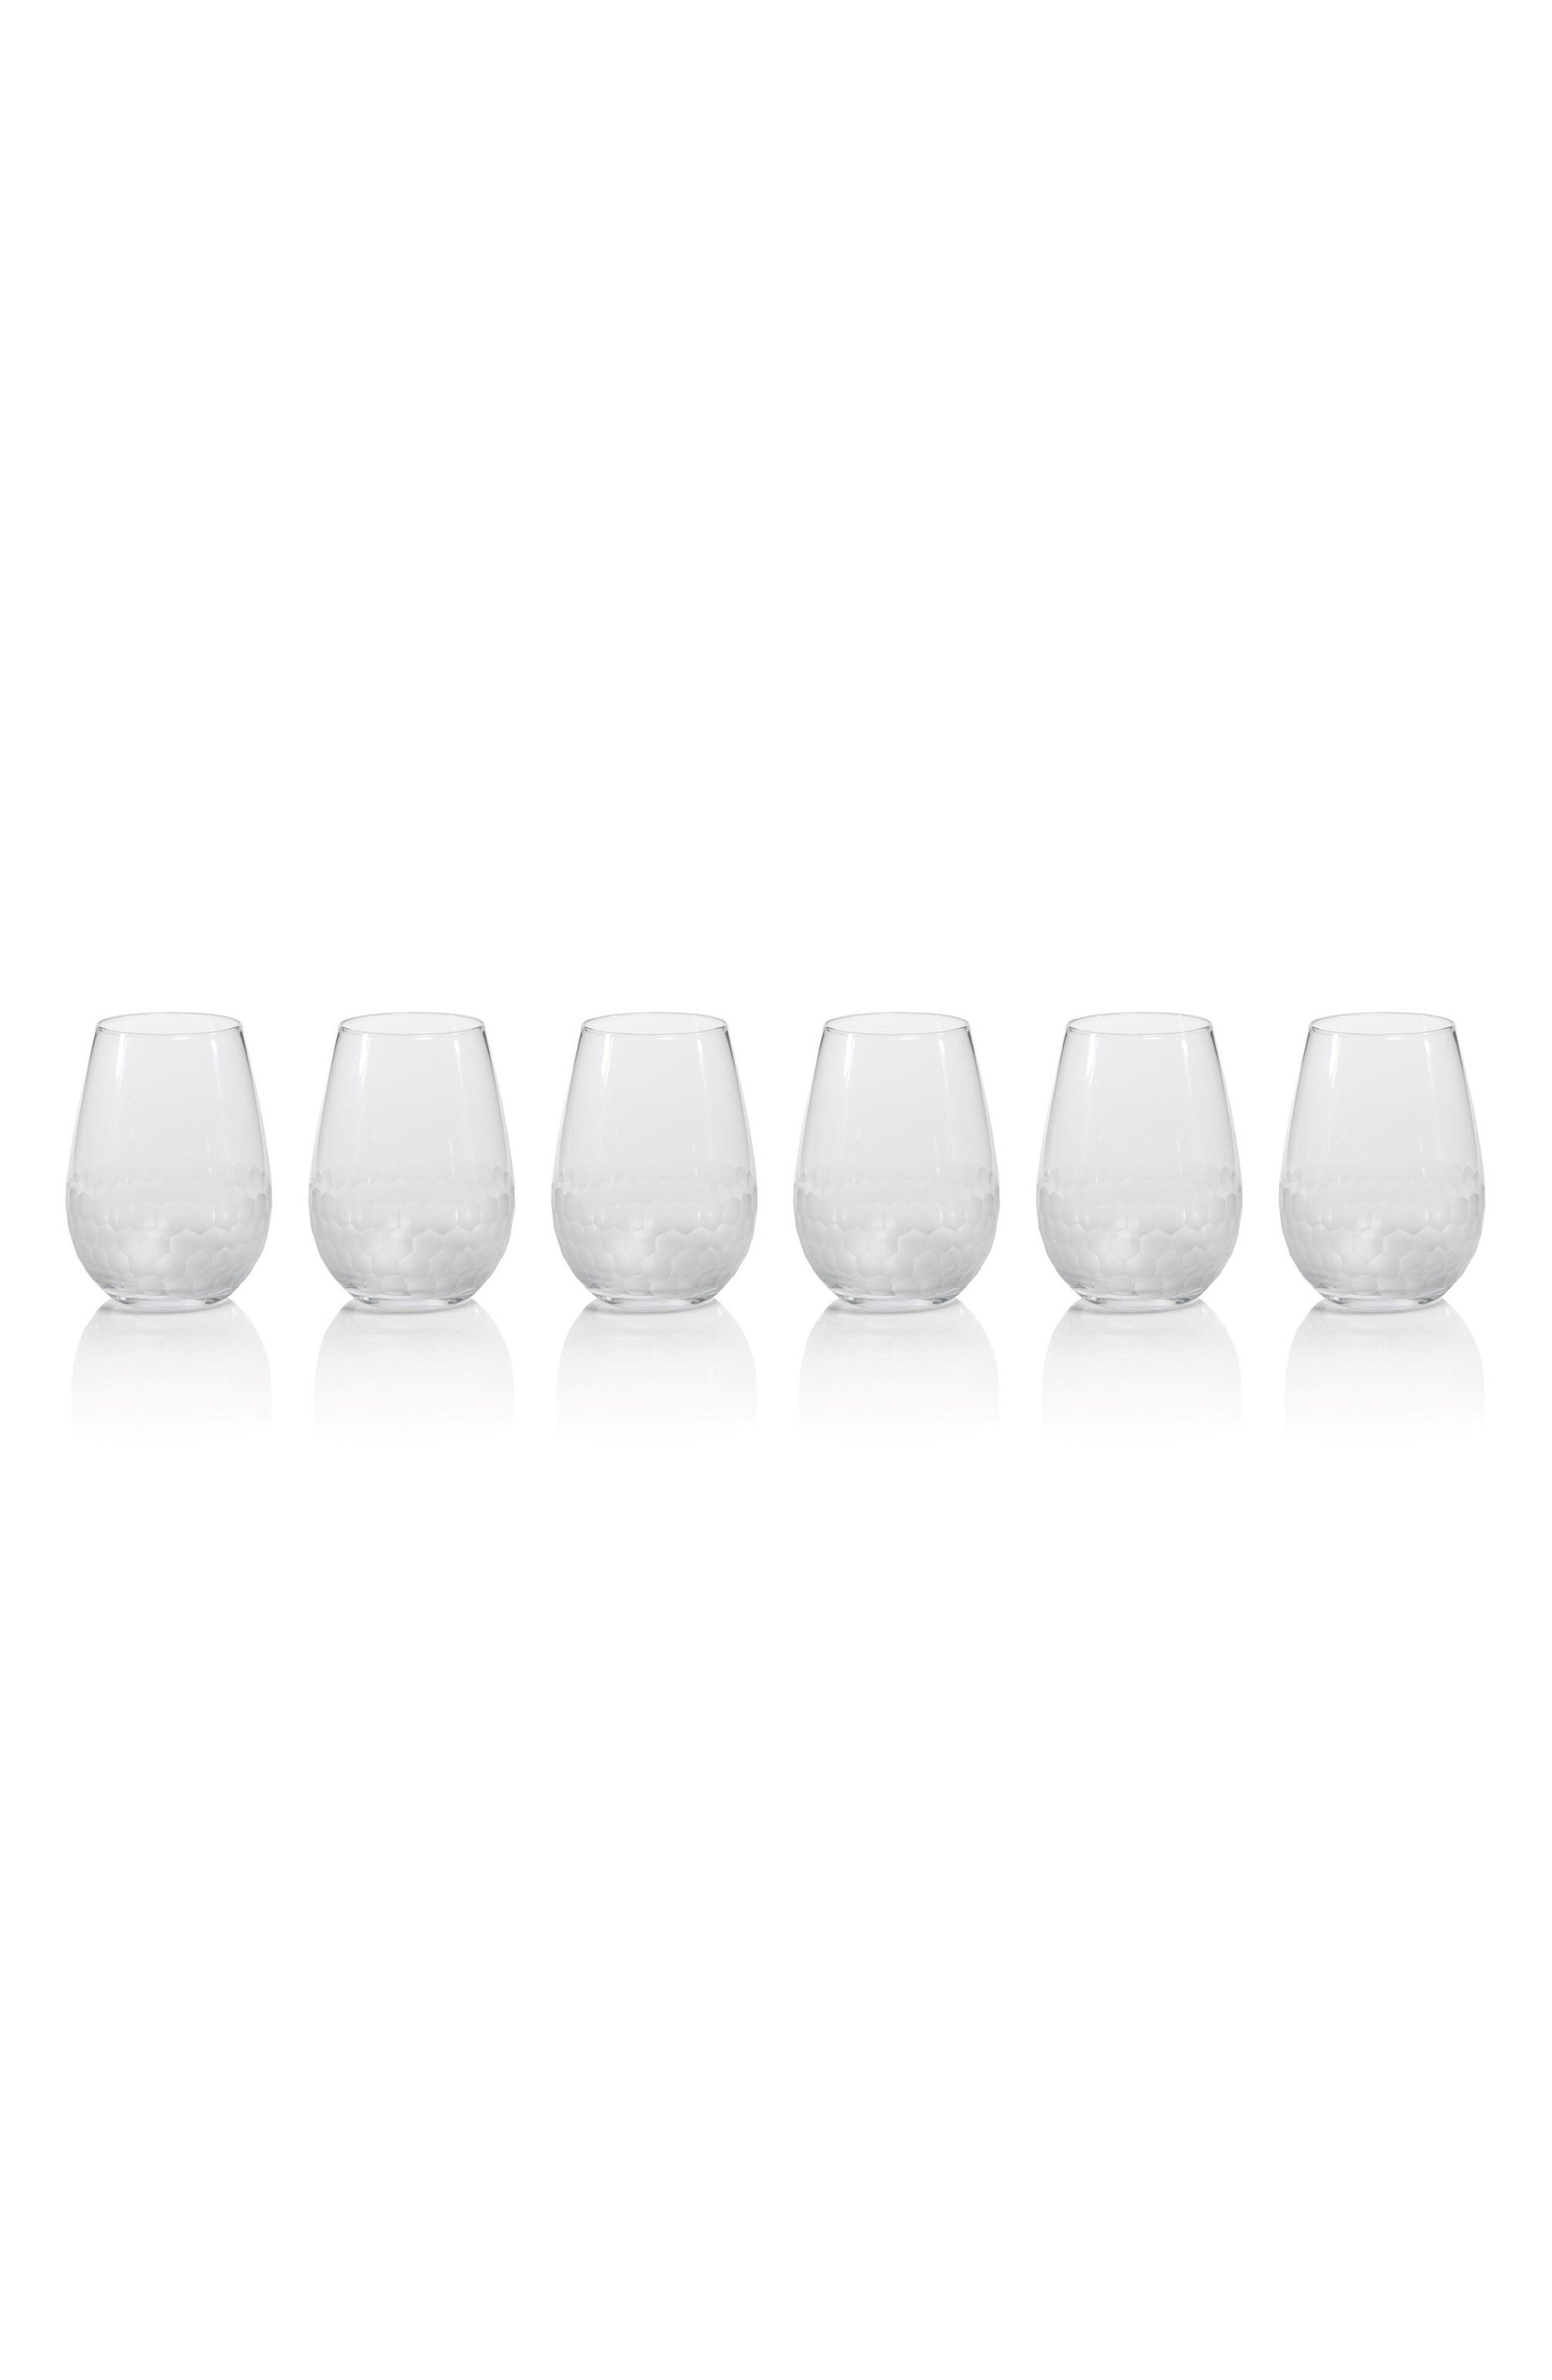 Main Image - Zodax Vitorrio Set of 6 Frosted Stemless Wine Glasses